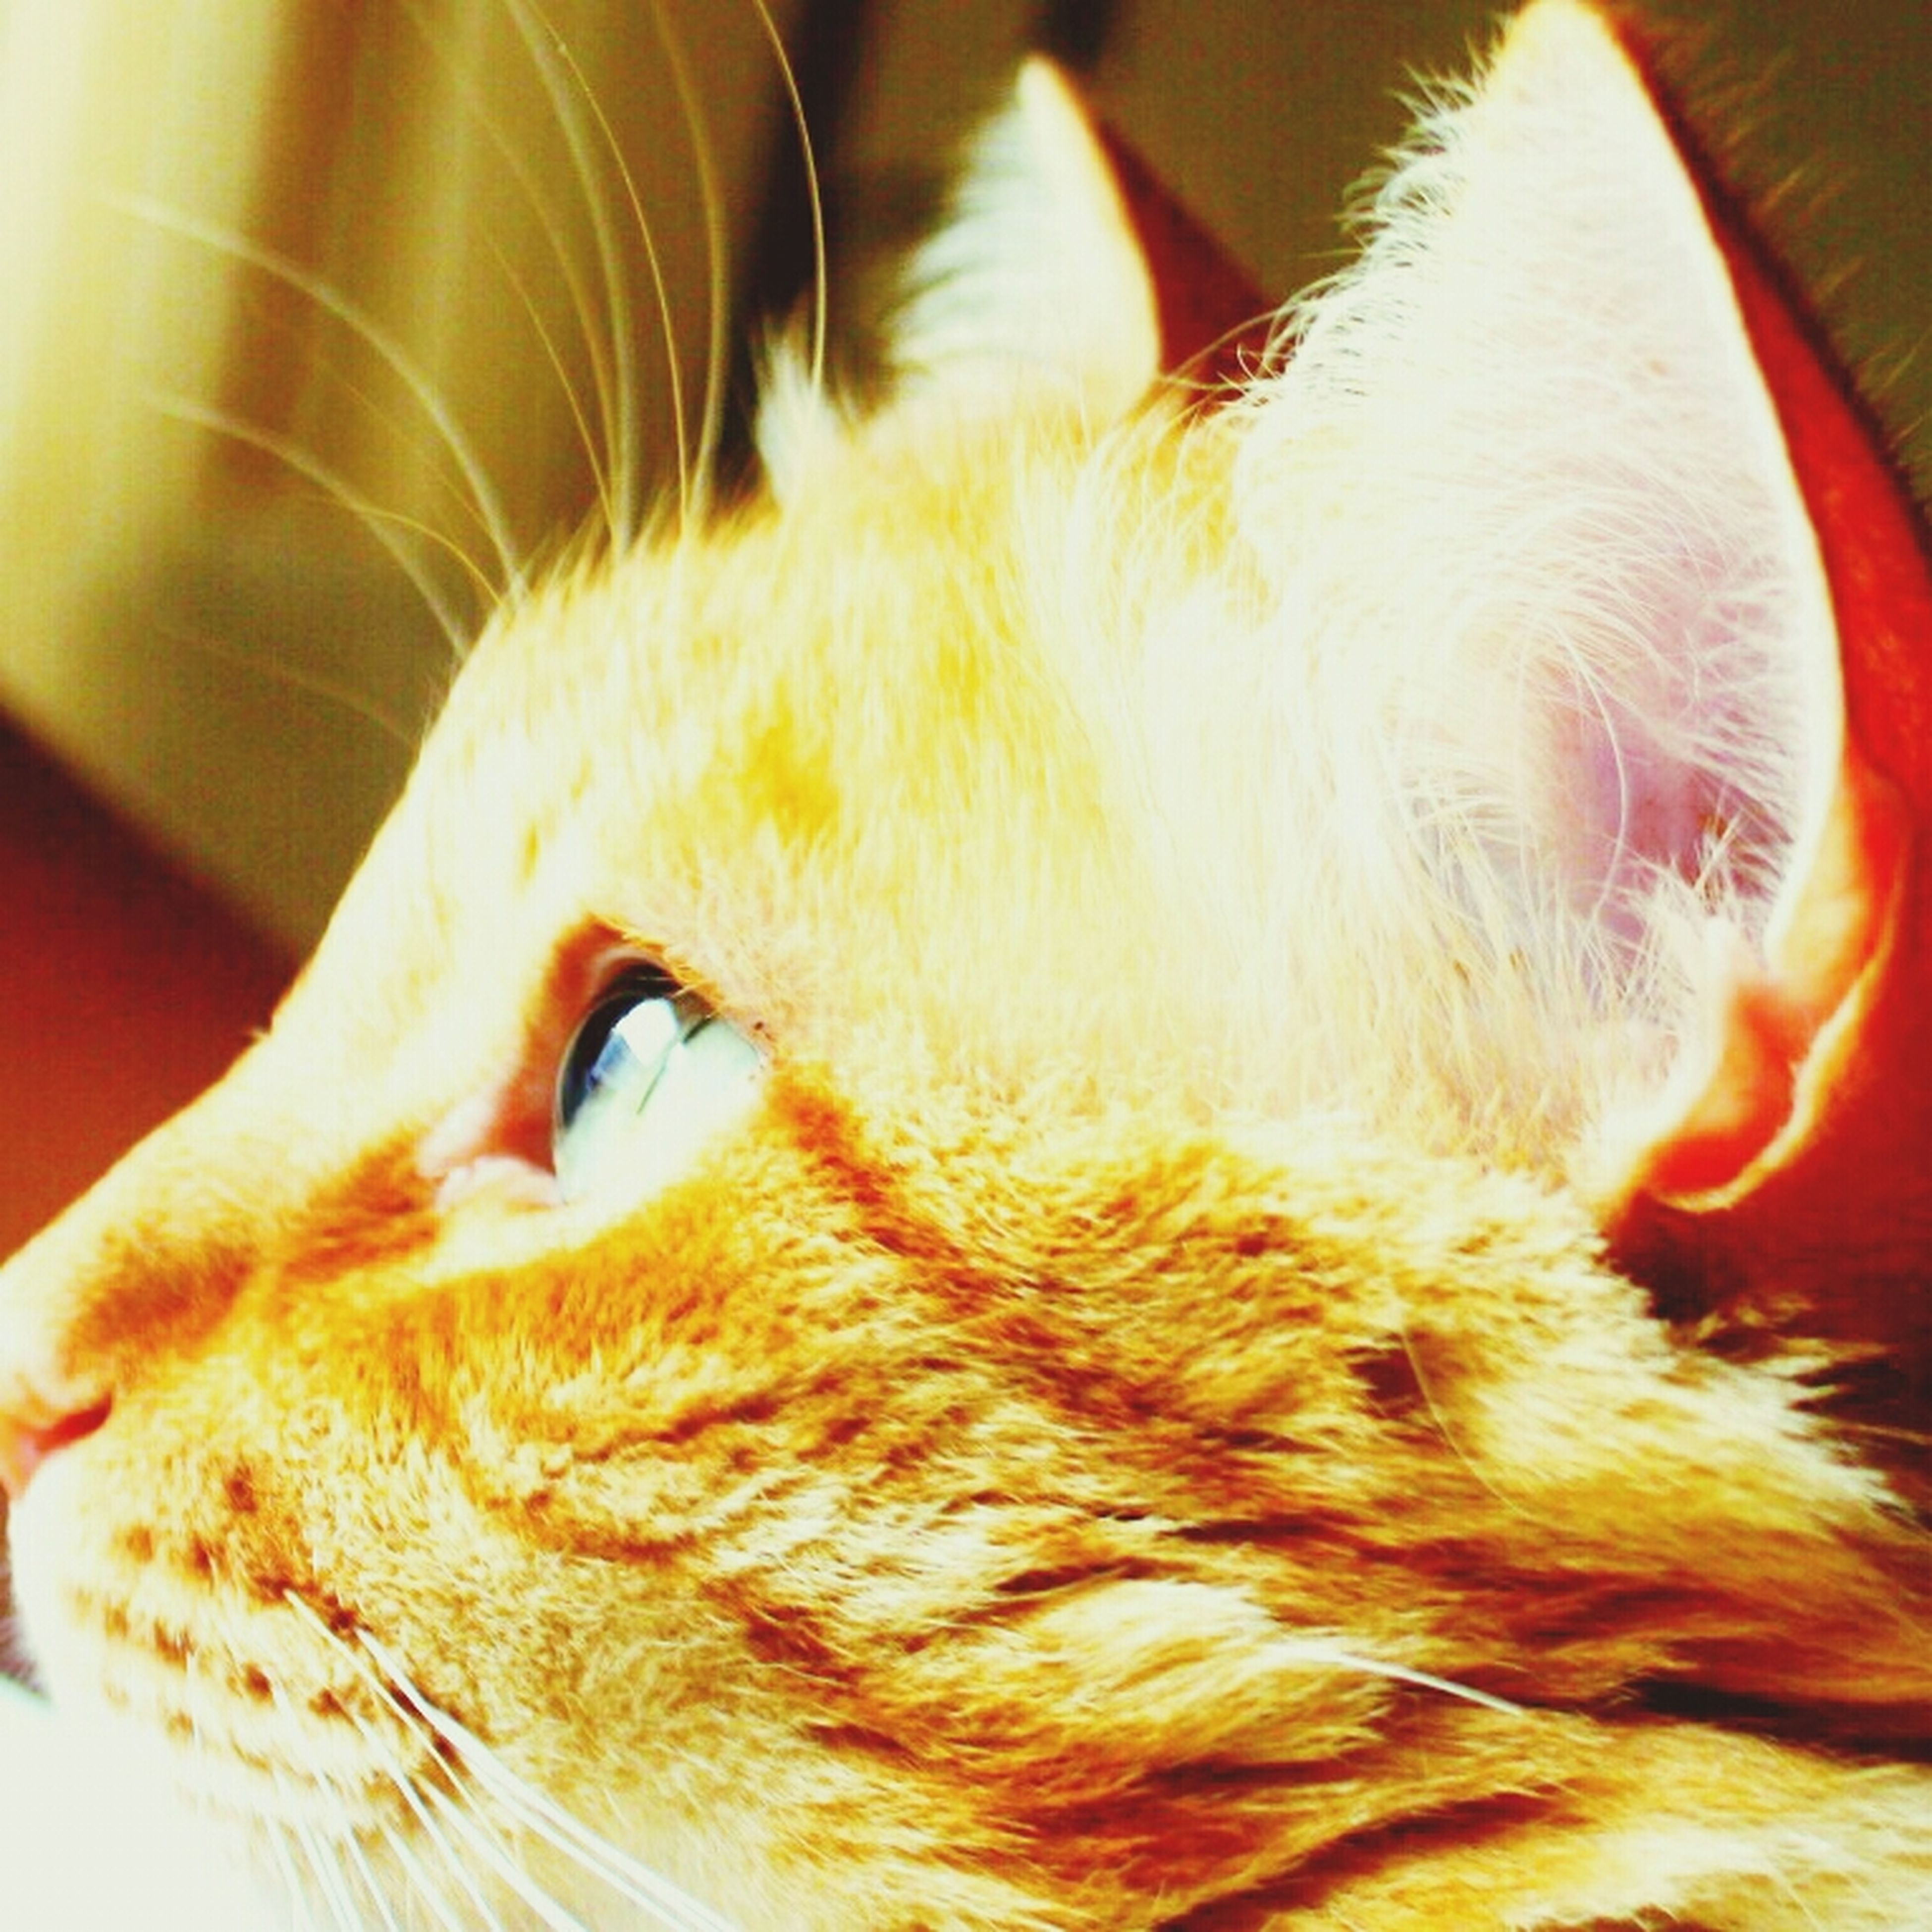 one animal, domestic animals, animal themes, pets, indoors, mammal, domestic cat, close-up, cat, animal head, whisker, feline, animal body part, part of, looking away, relaxation, focus on foreground, home interior, no people, animal eye